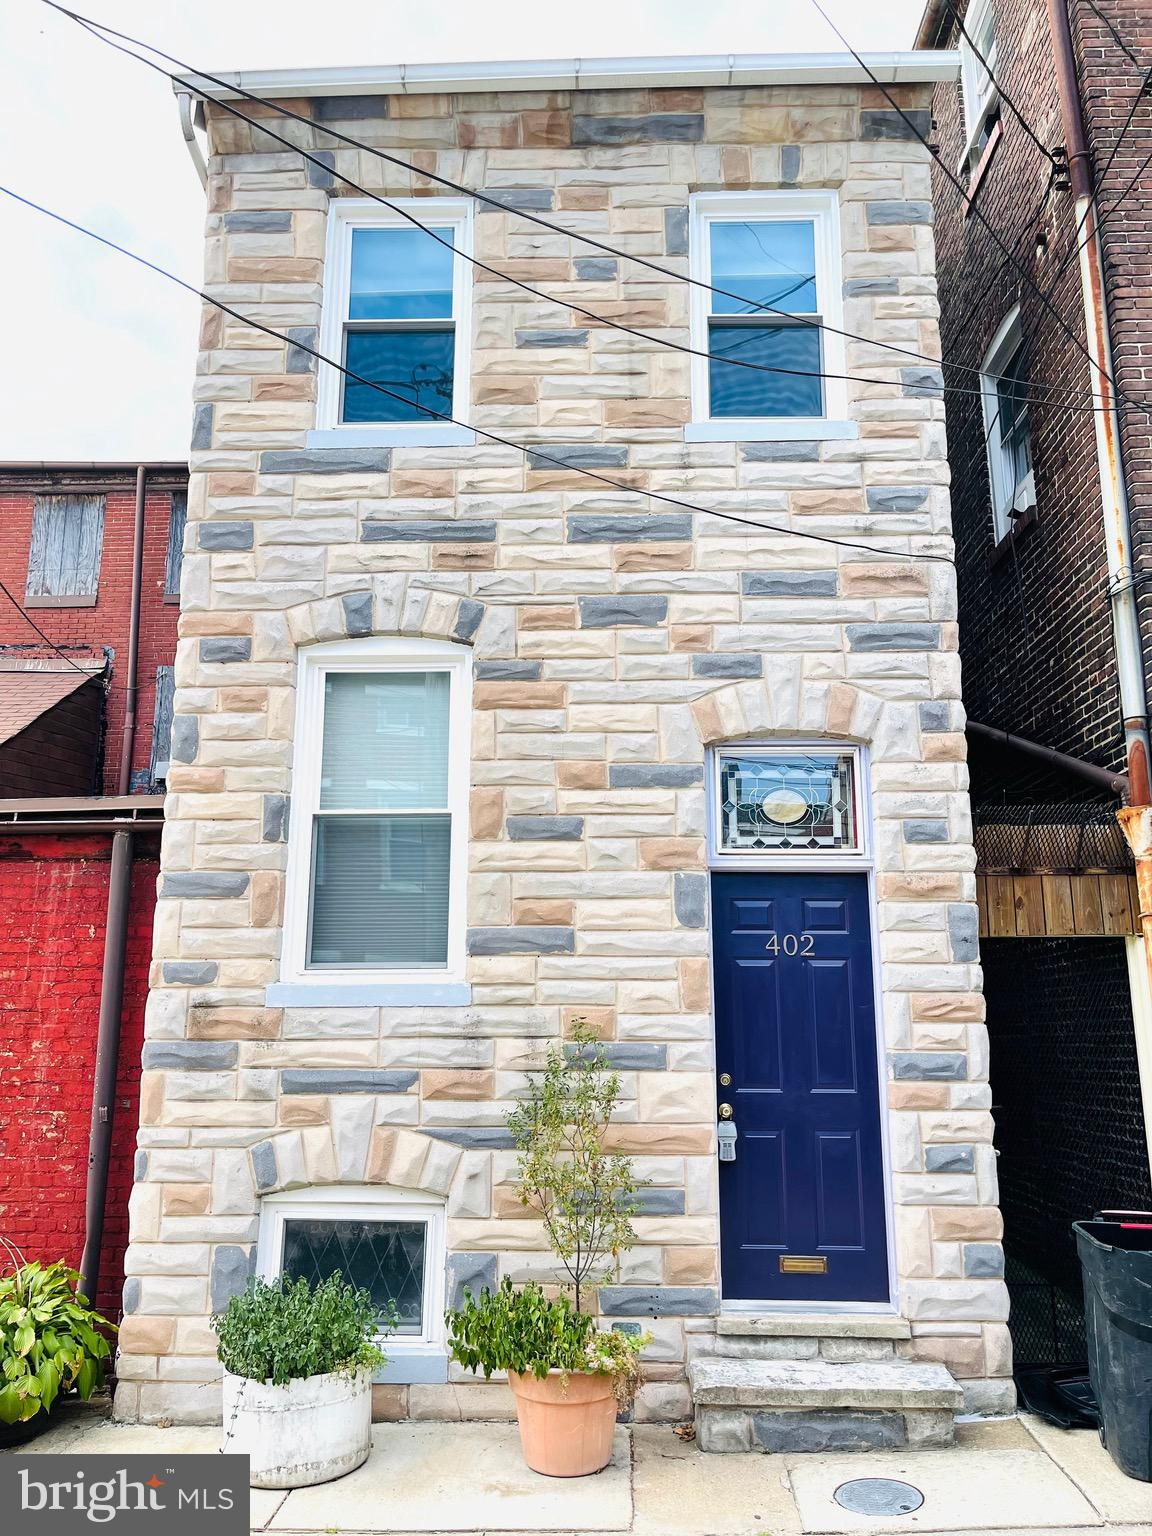 Come see this adorable house located on a quiet alley street in Fells Point!  This house has 100% Baltimore personality!  Many original features are still in-tact such as the original tin walls (repurposed from the kitchen ceiling) and transom window in the vestibule, wood paneling salvaged from an old bank on Eastern Ave throughout the living room/dining room and the mantle in the primary bedroom.  Exposed brick and hardwood floors throughout the house.  Open kitchen concept containing plenty of cabinets and a breakfast bar that overlooks the quaint English garden, which is filled with an abundance of greenery.  Primary bedroom has a generous-sized closet with an en suite bathroom.  Additional bedroom on the second floor has original wood floors, two closets and a large interior round window and an en suite bathroom.  The private attached full bath has the ever-popular claw foot tub and tons of natural light. Large room on the third floor is perfect for a bedroom, office or dressing room.  Full, clean, dry basement holds the washer/dryer, plenty of storage and workspace for creatives.  Four Mitzubishi Split Units easily cool the house. New roof, new windows in 2019. New furnace in 2018. Walk right into Fells Point, short walk to Harbor East and Hopkins Hospital.  This home retains its original charm, if you want the real deal, come and see this house!